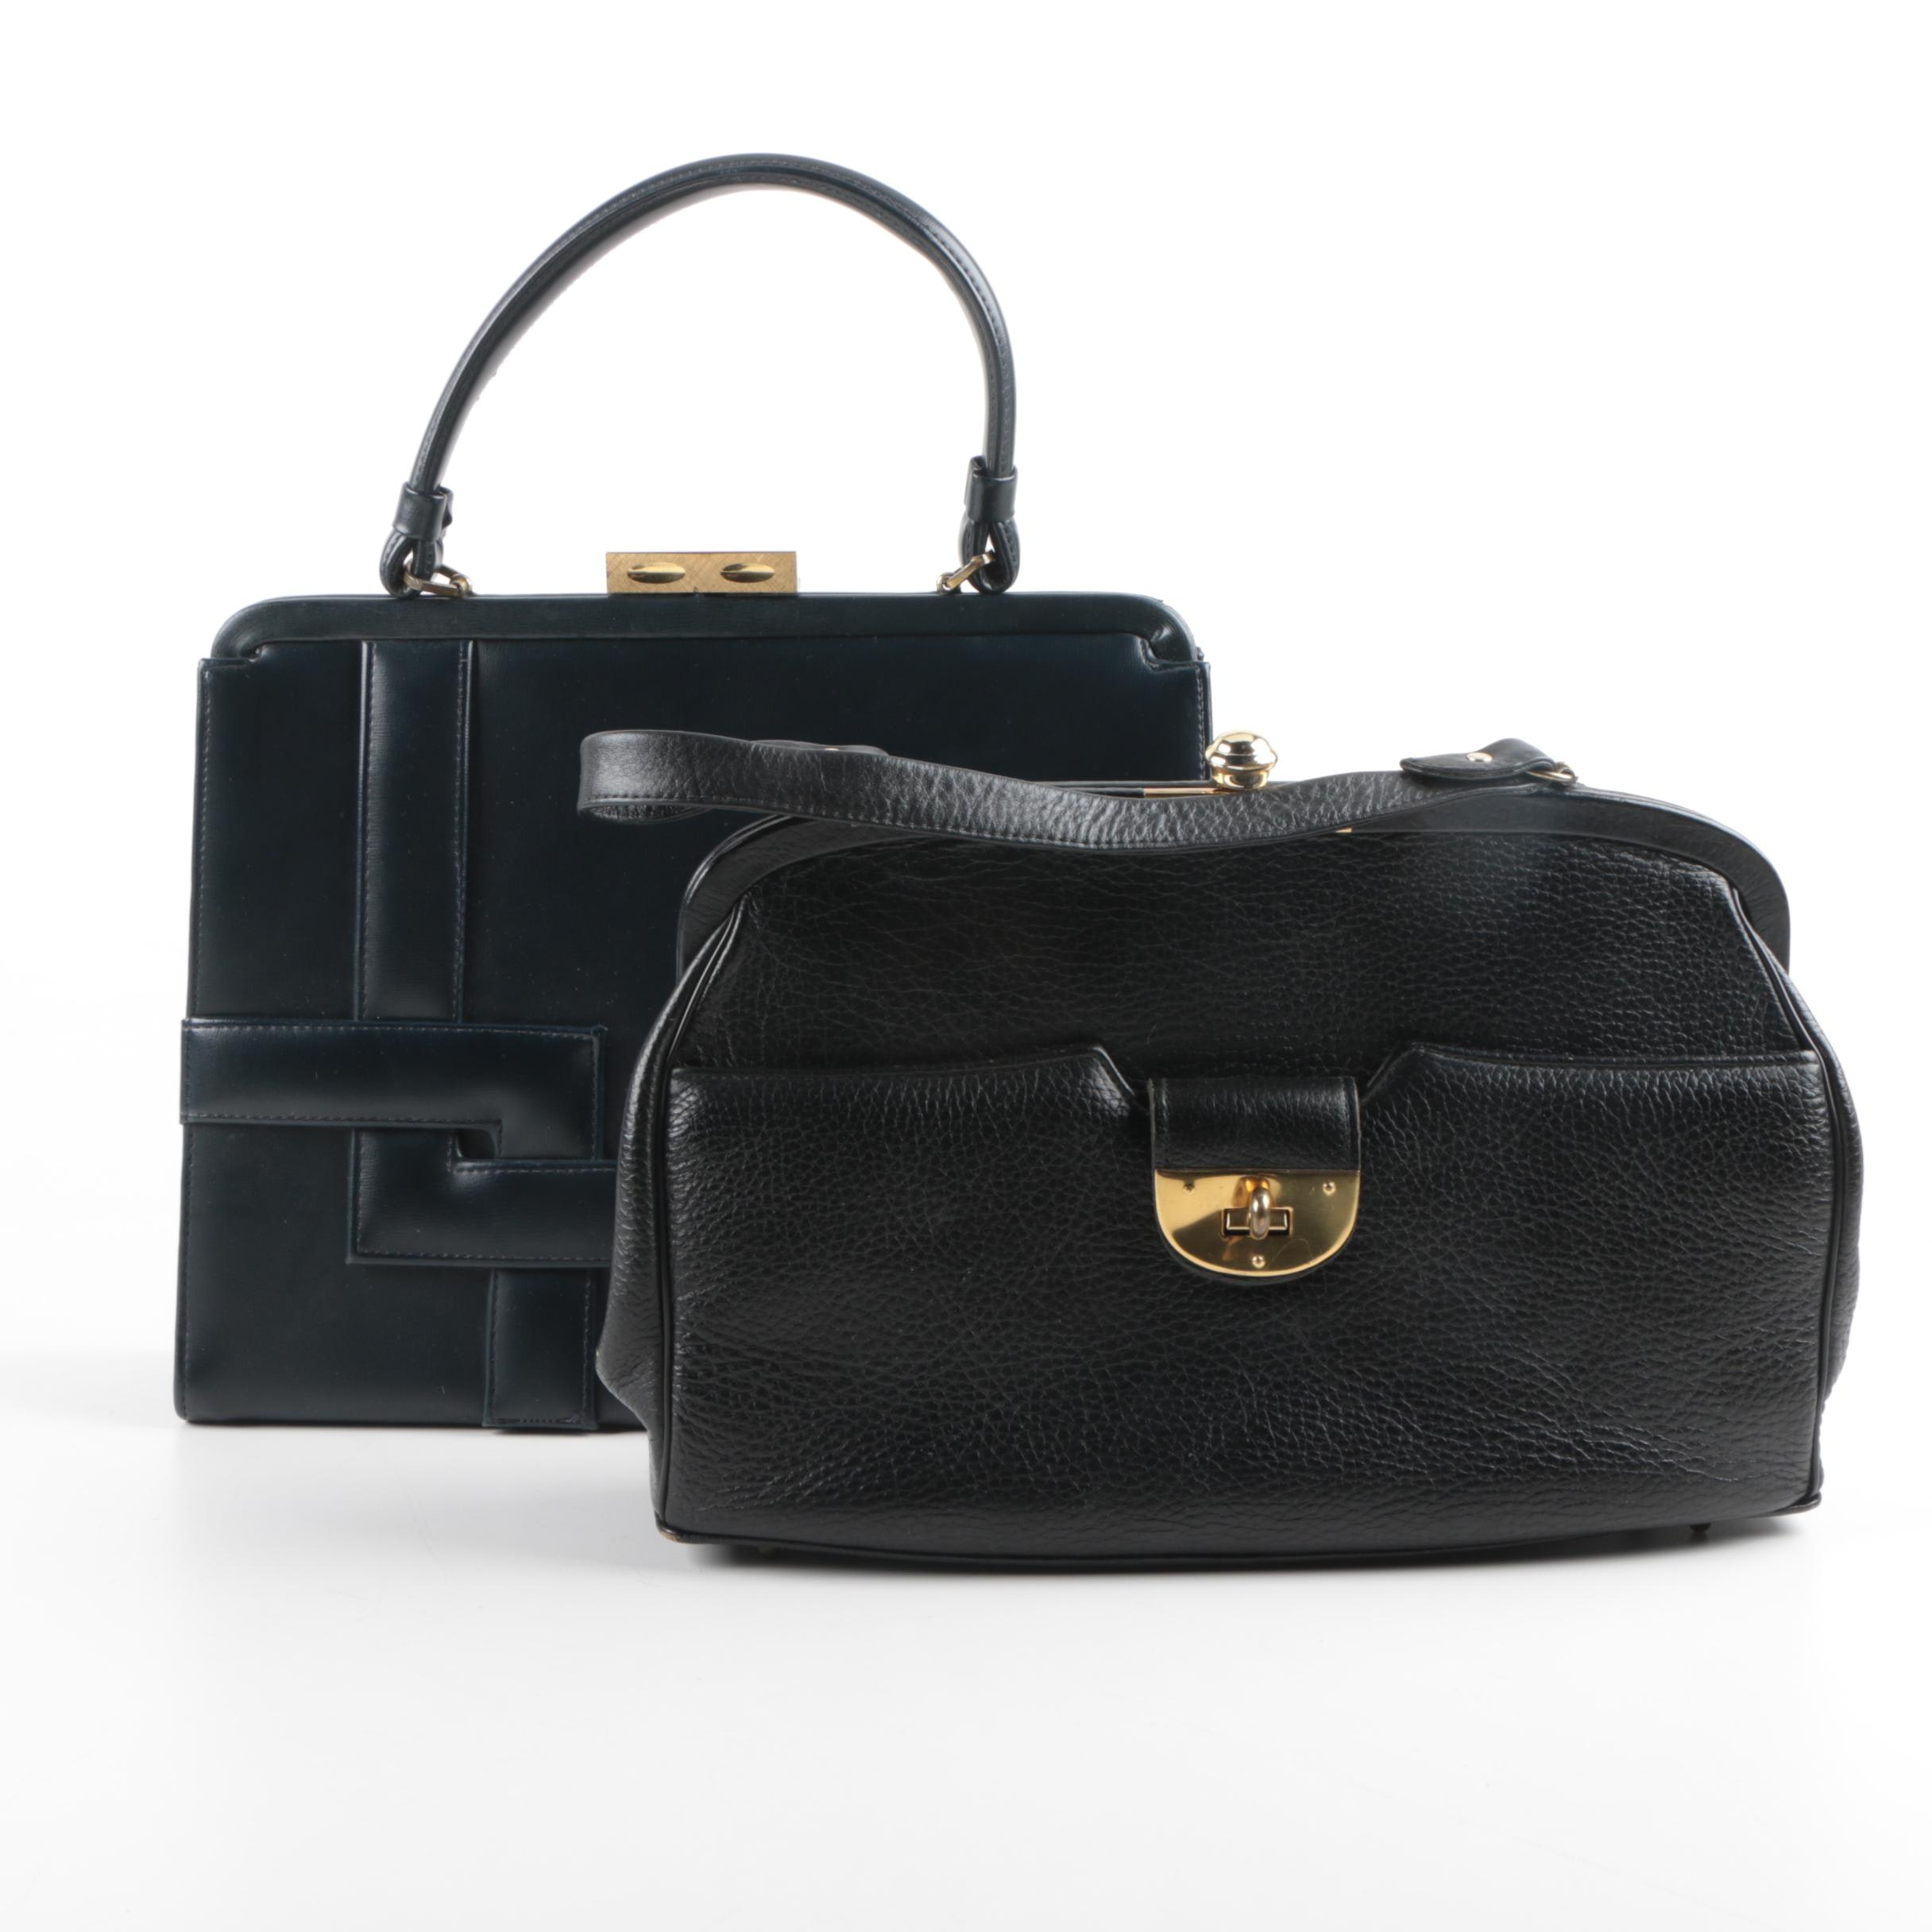 Vintage Leather and Faux Leather Hinge Handbags